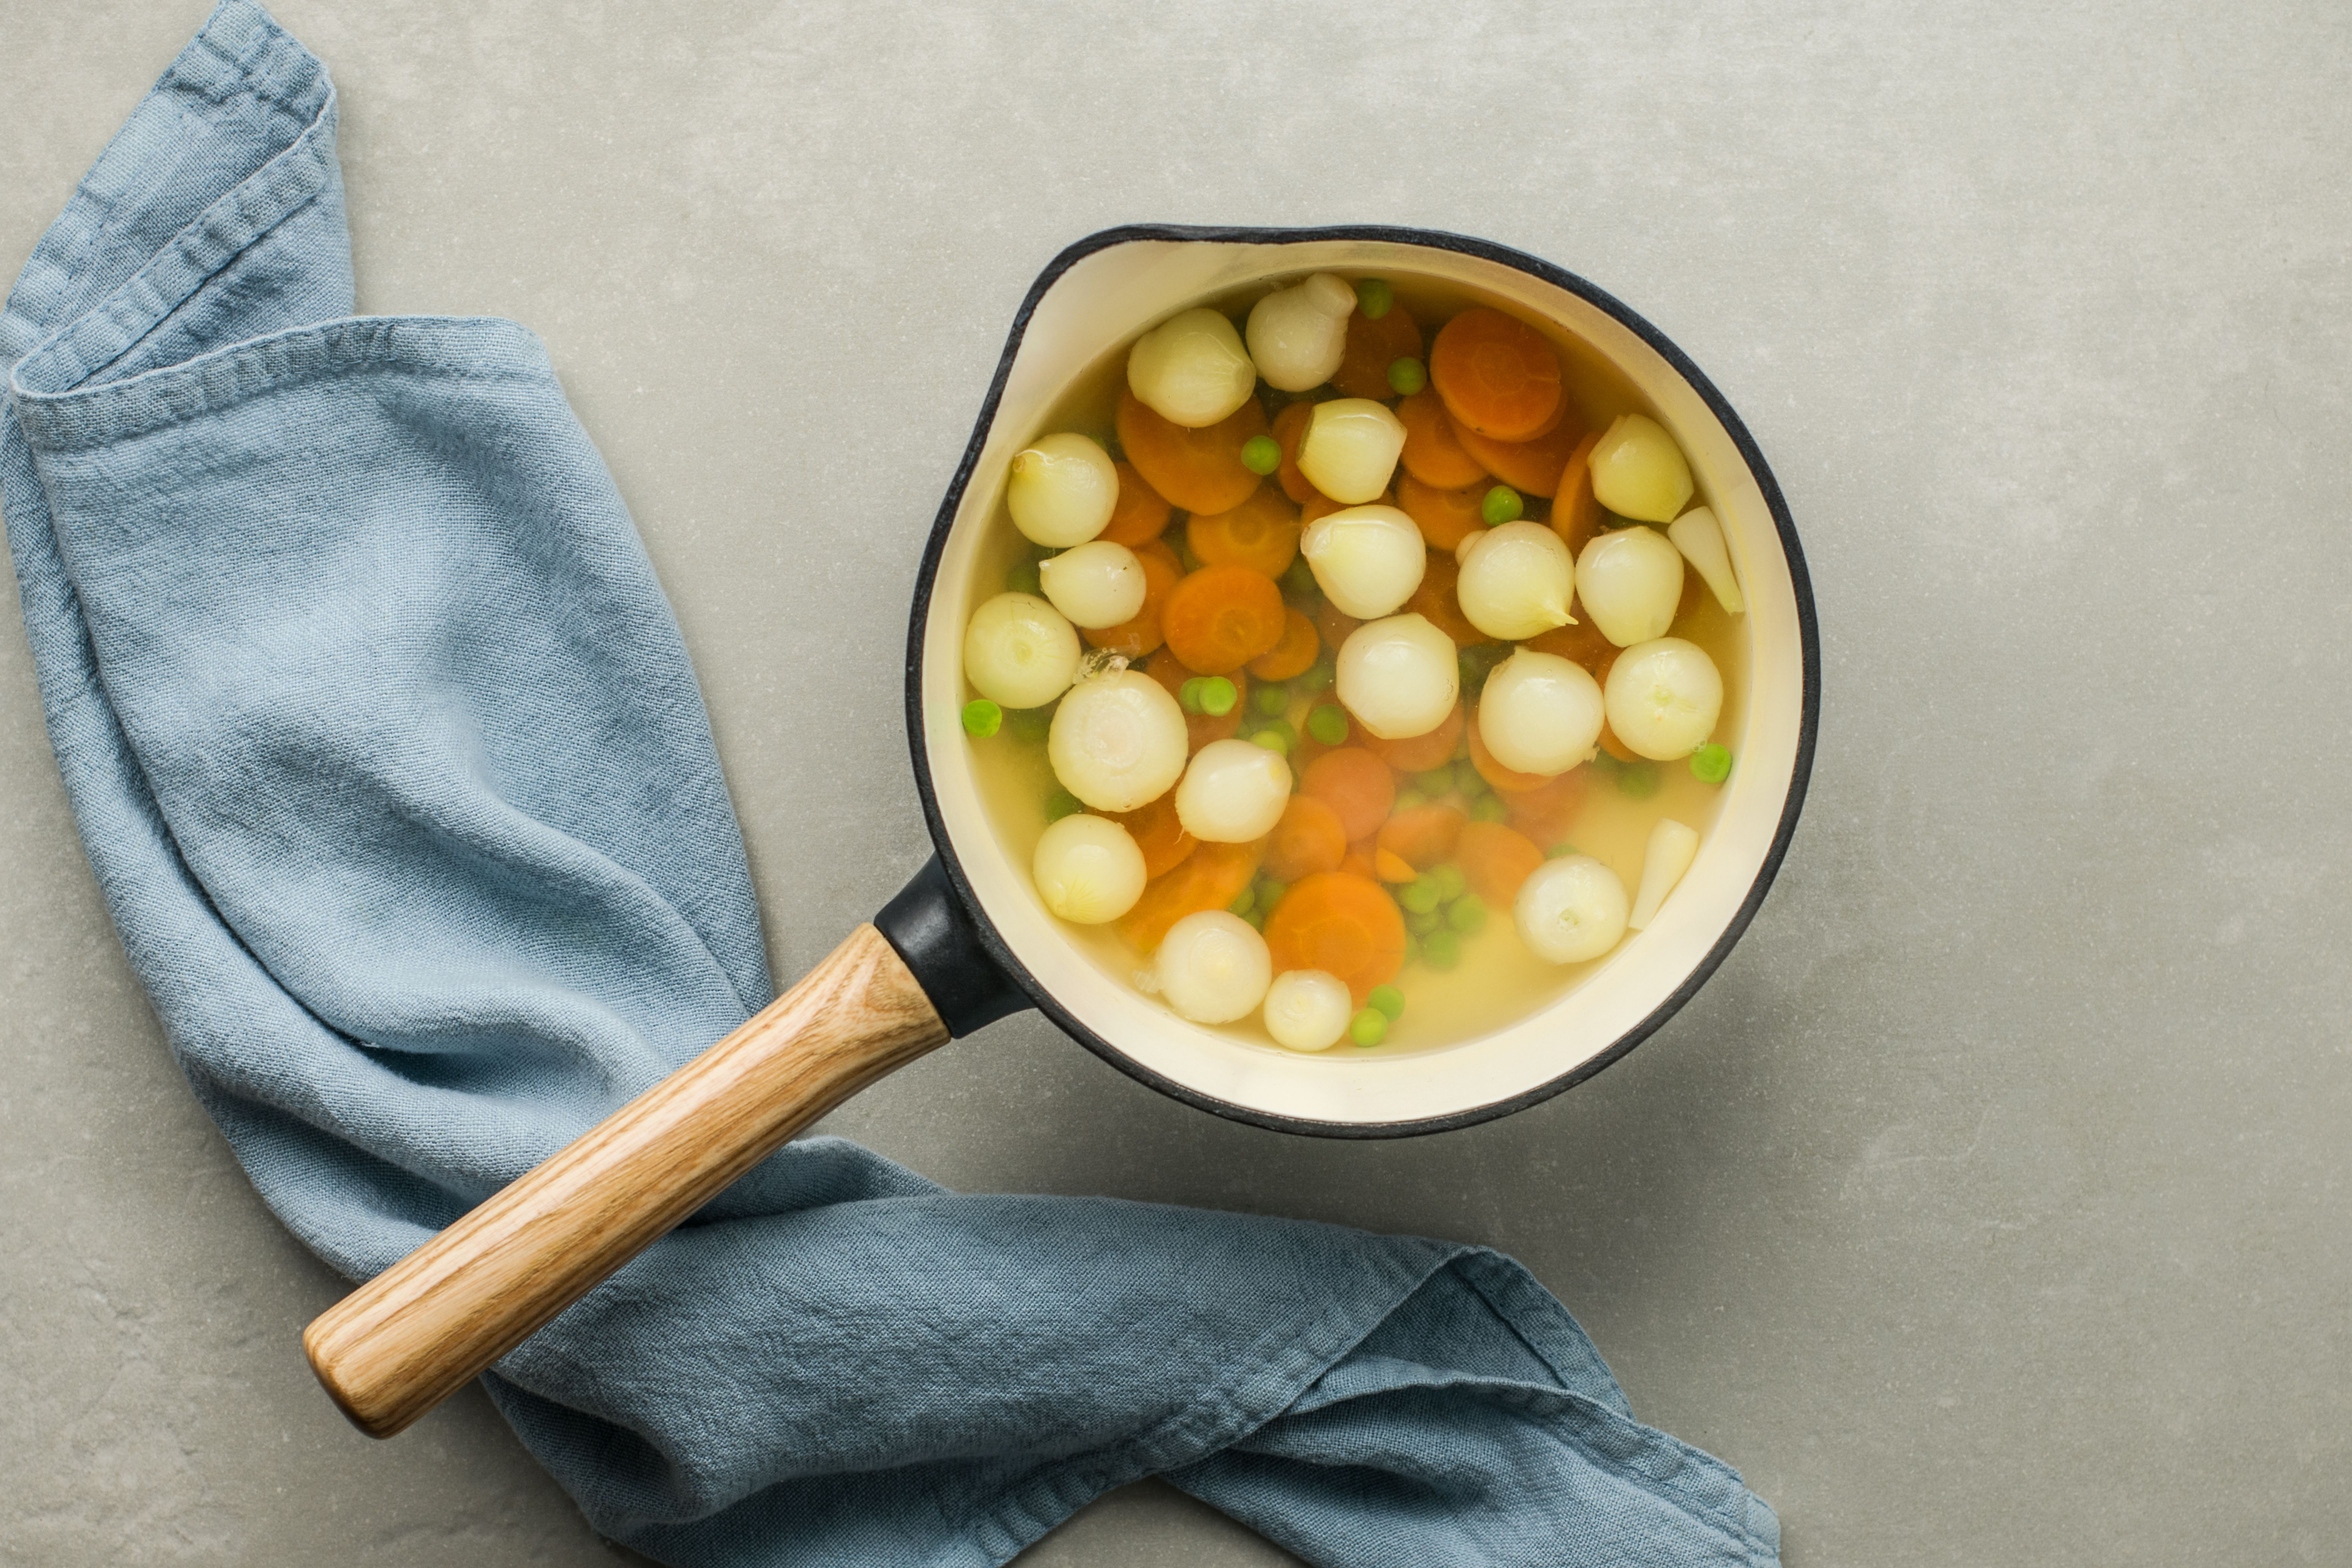 Cooked onions, peas, and carrots in a saucepan